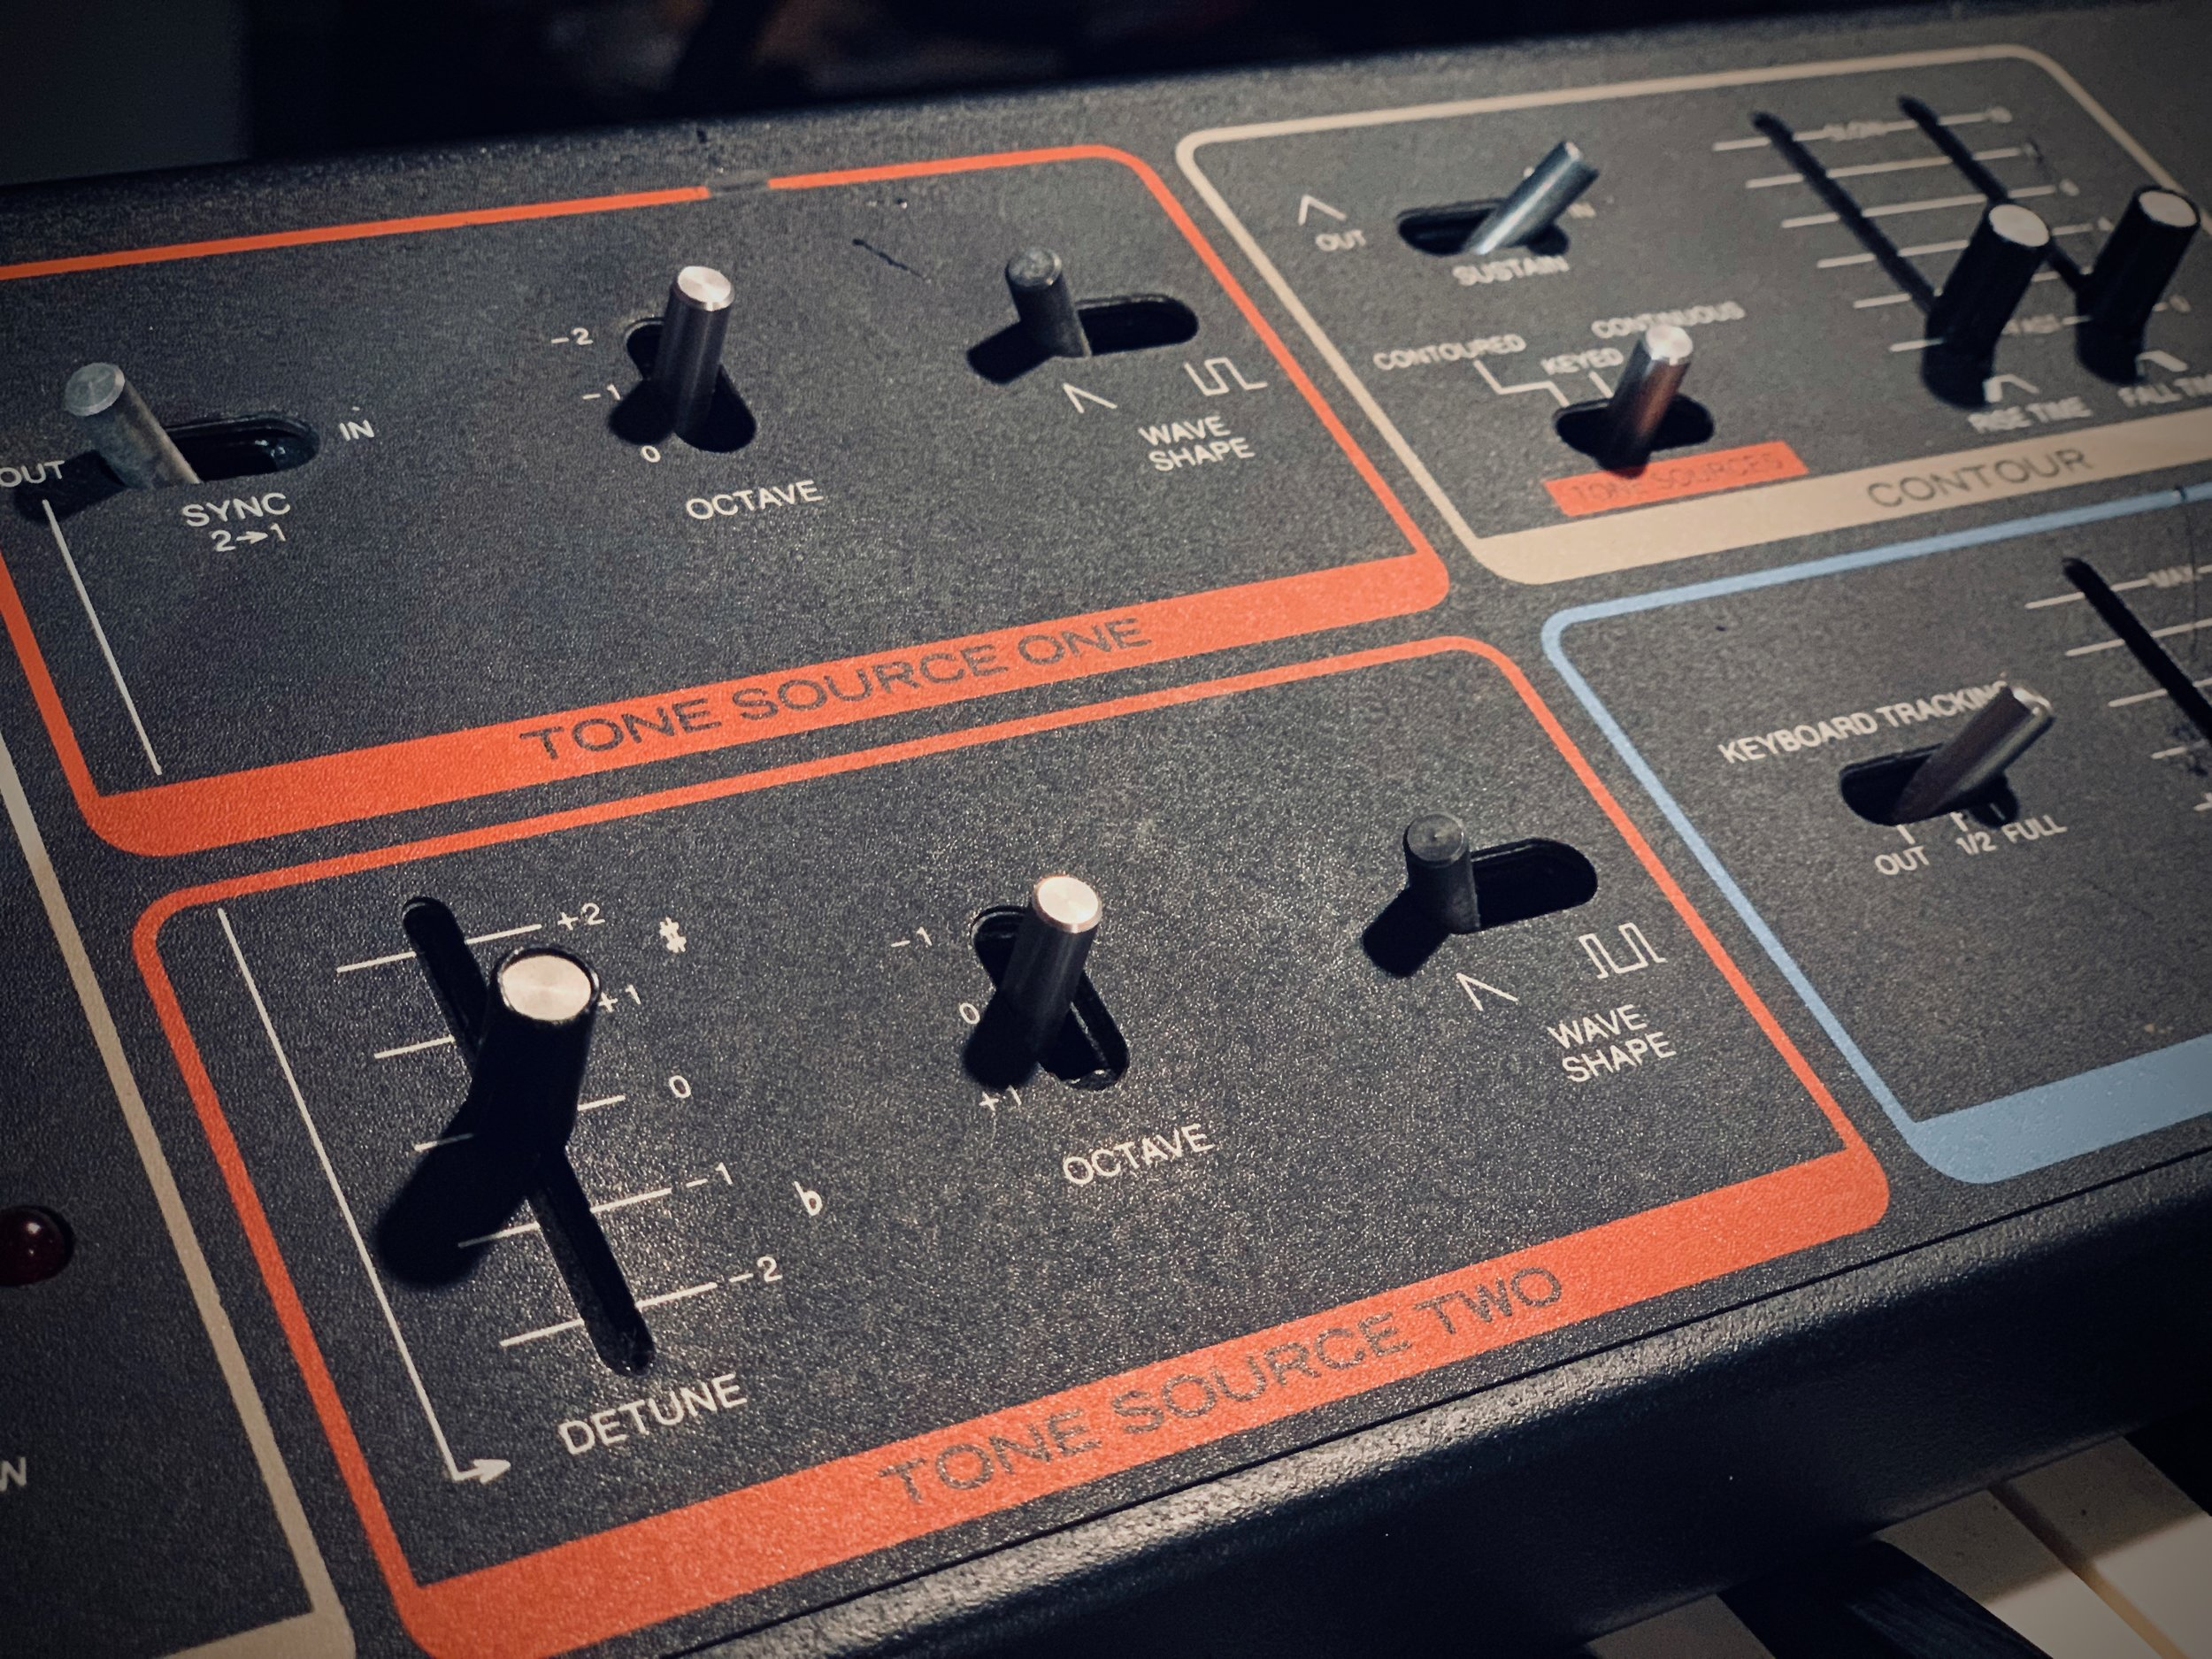 The two tone sources on the Moog MG-1